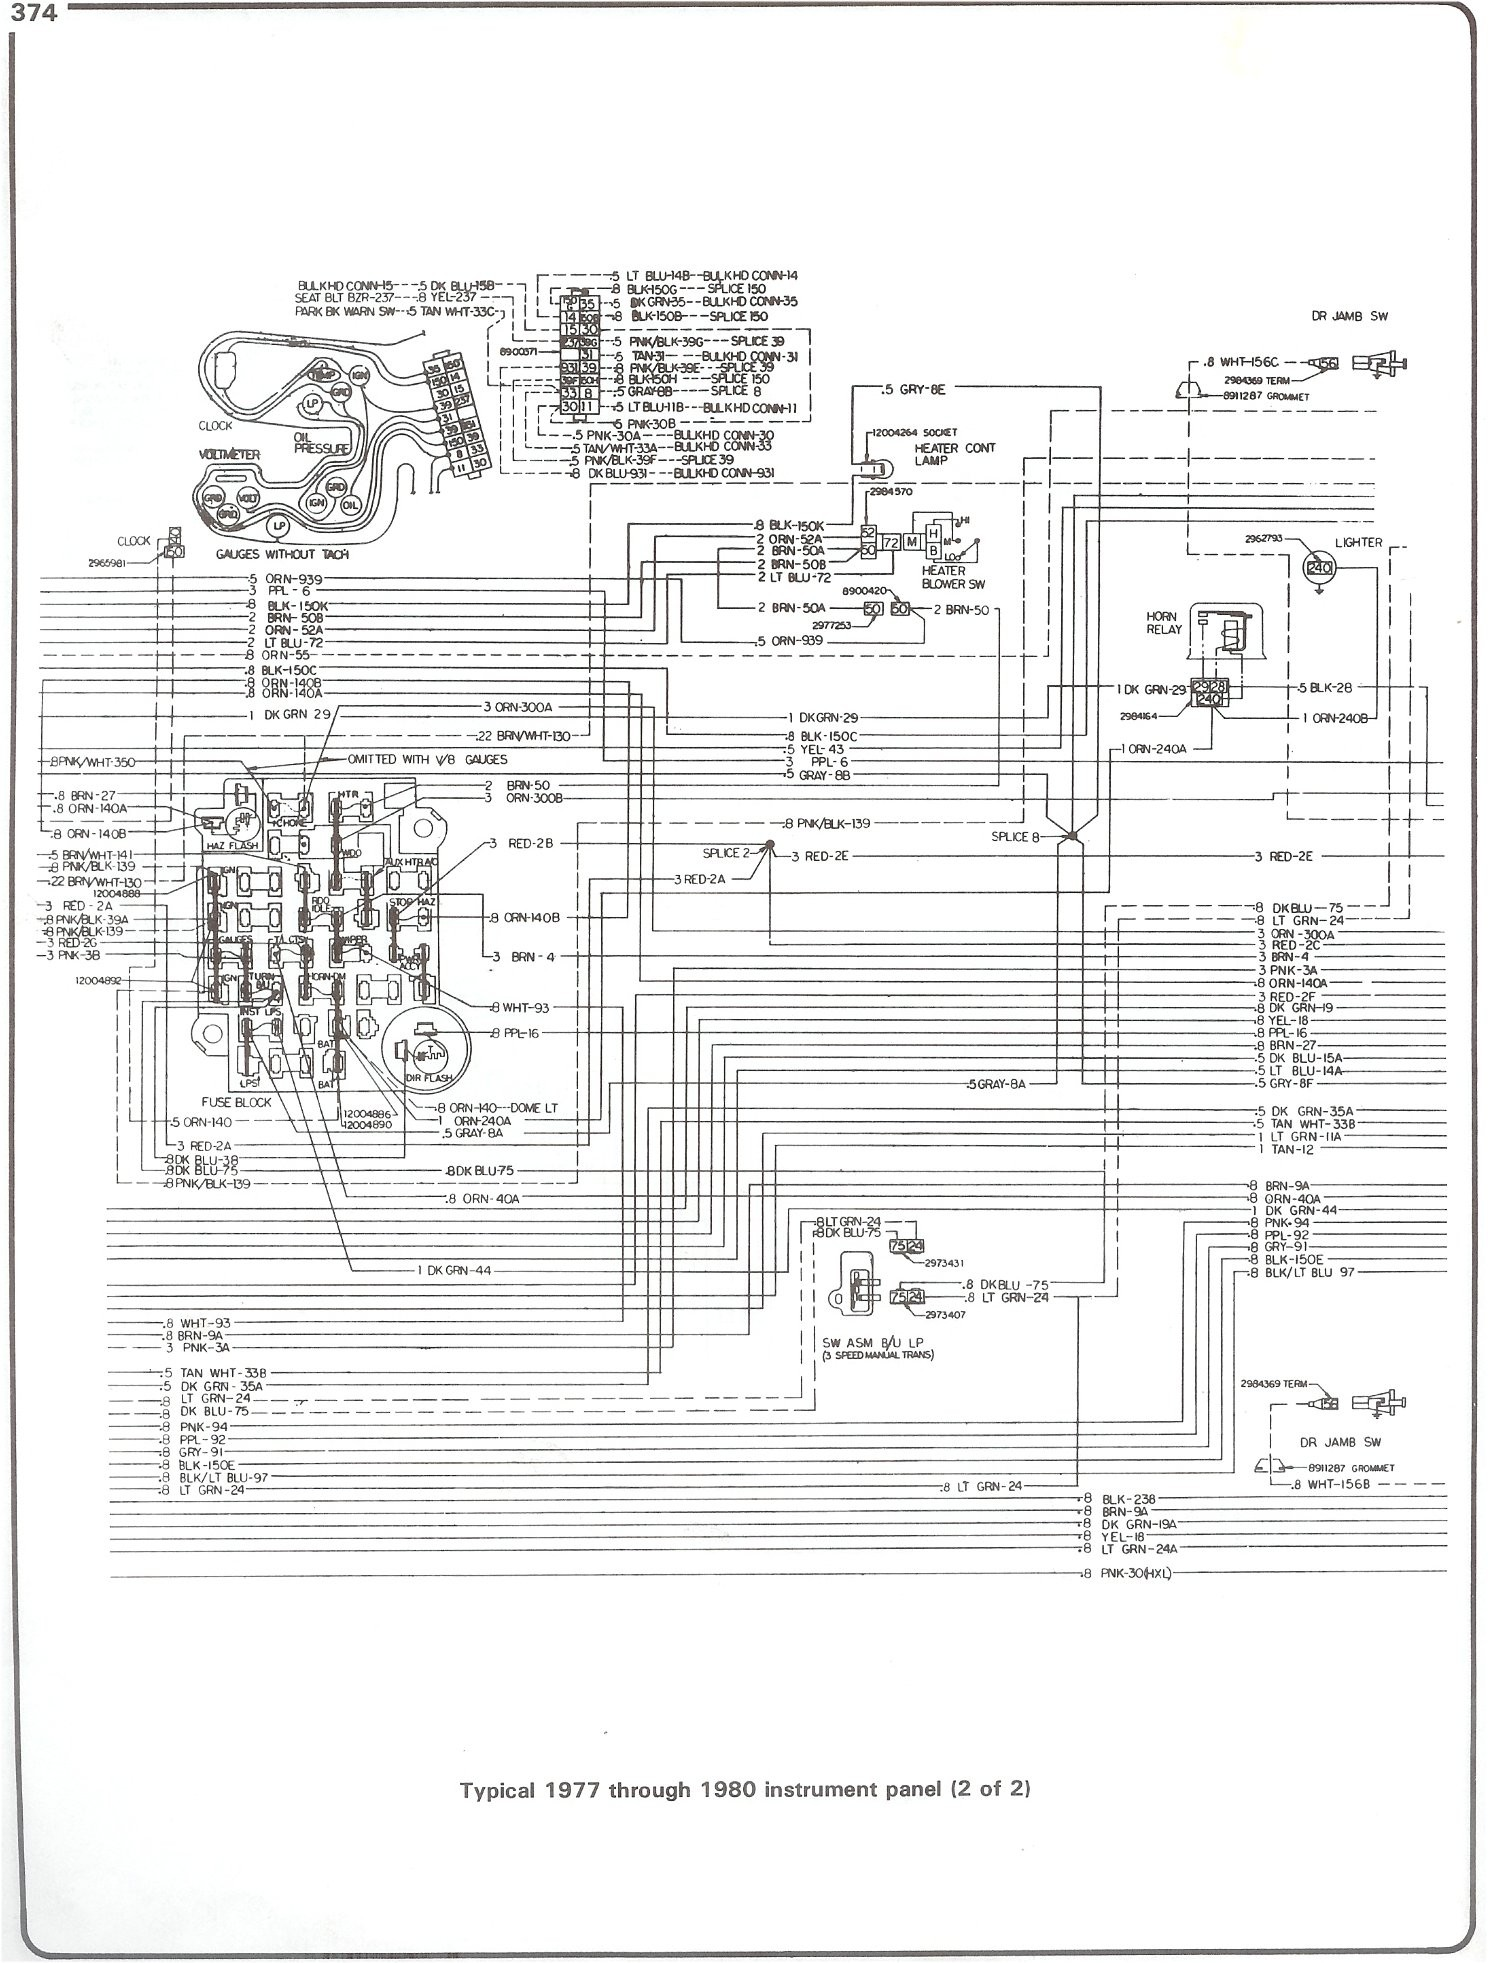 box truck diagram 1984 gm p30 wiring wiring diagram my wiring diagram rh detoxicrecenze com G30 1984 Wiring Chevy Diagrns Chevrolet Turn Signal Wiring Diagram